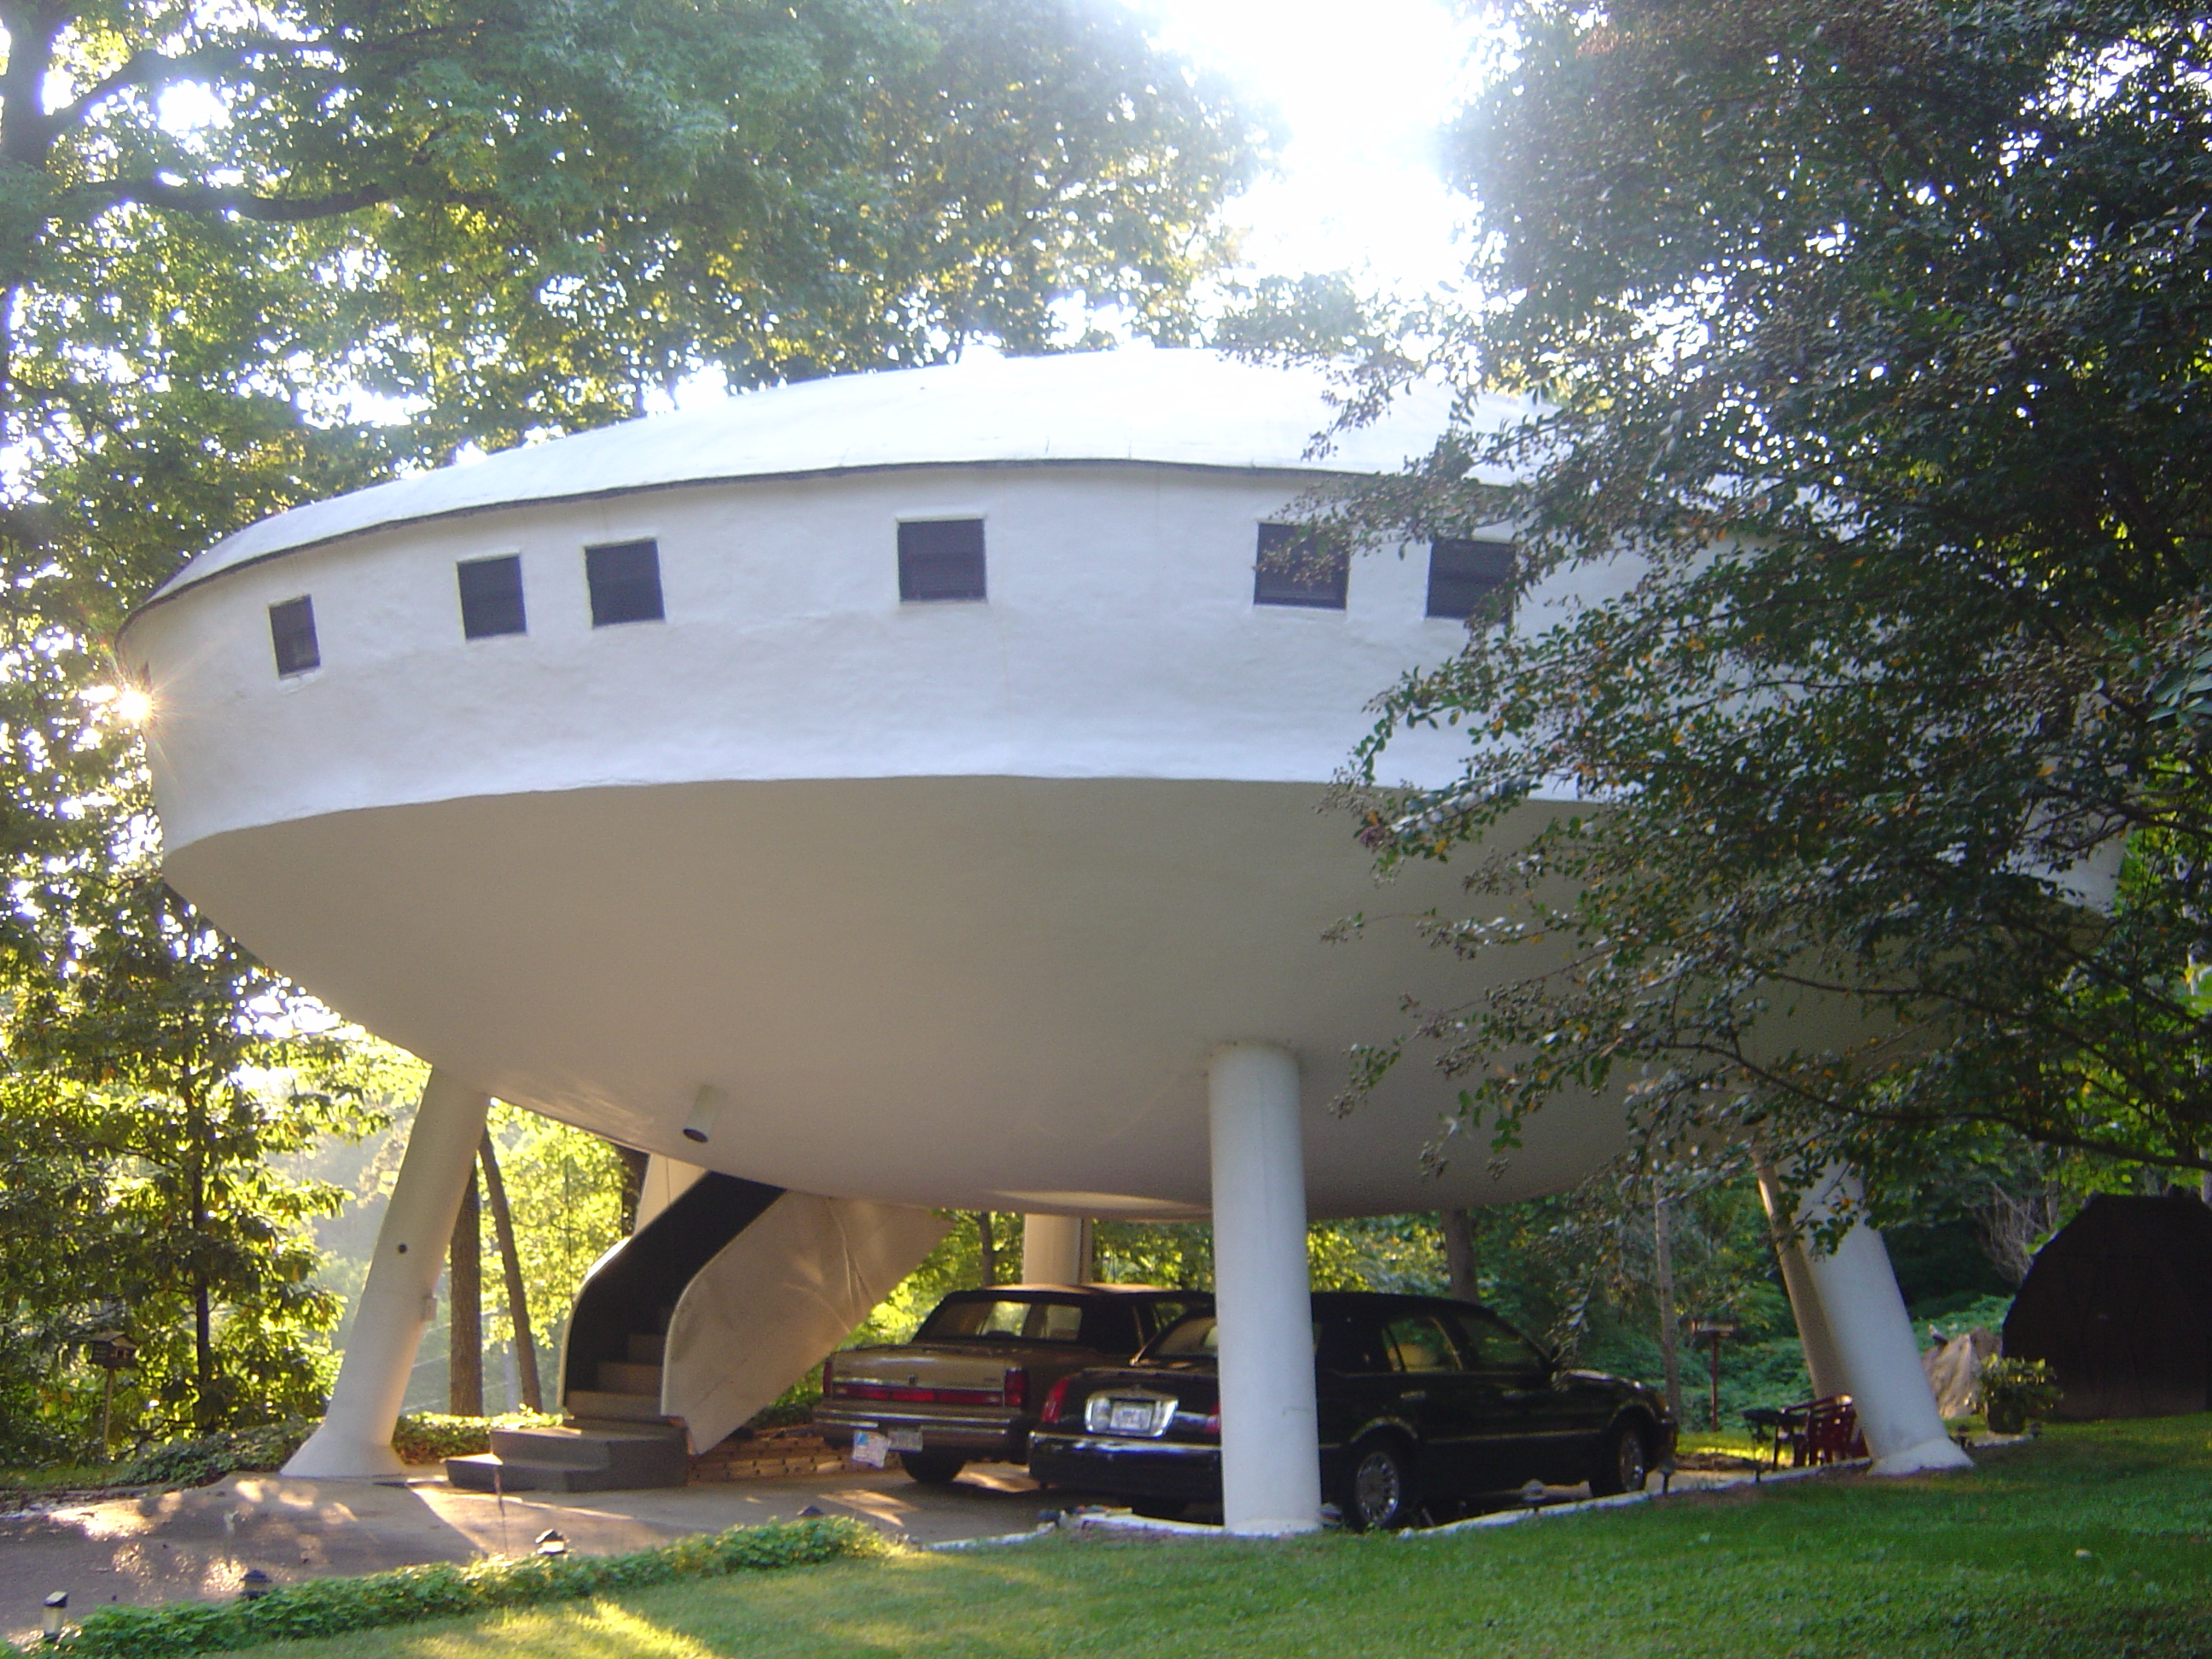 This Bizarre House In Tennessee Is Truly Unique